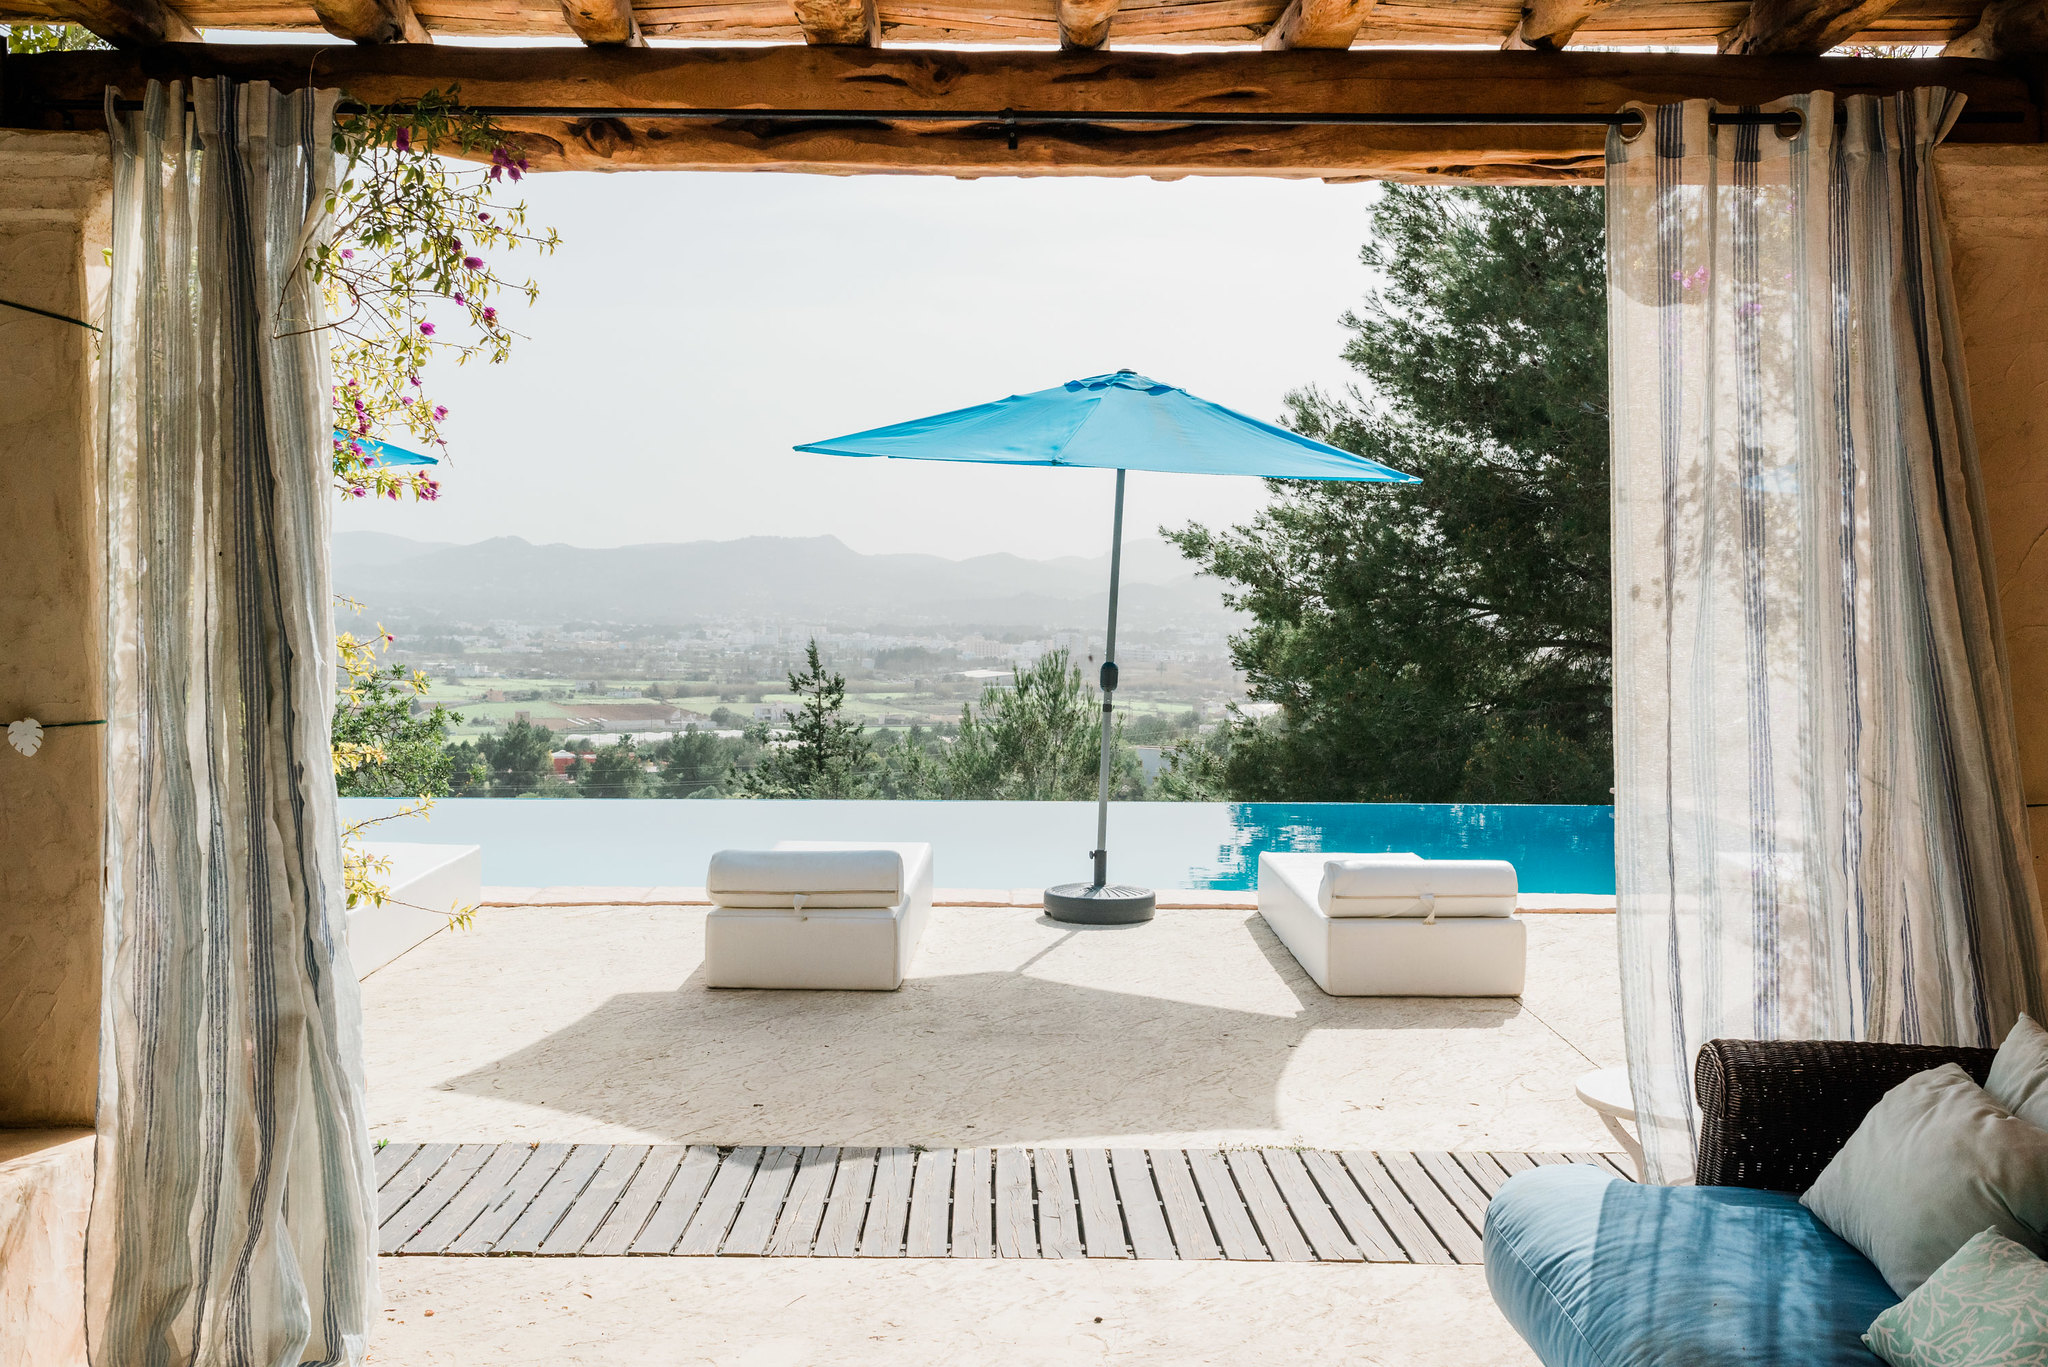 https://www.white-ibiza.com/wp-content/uploads/2020/06/white-ibiza-villas-los-corrales-exterior-view-from-chillout.jpg